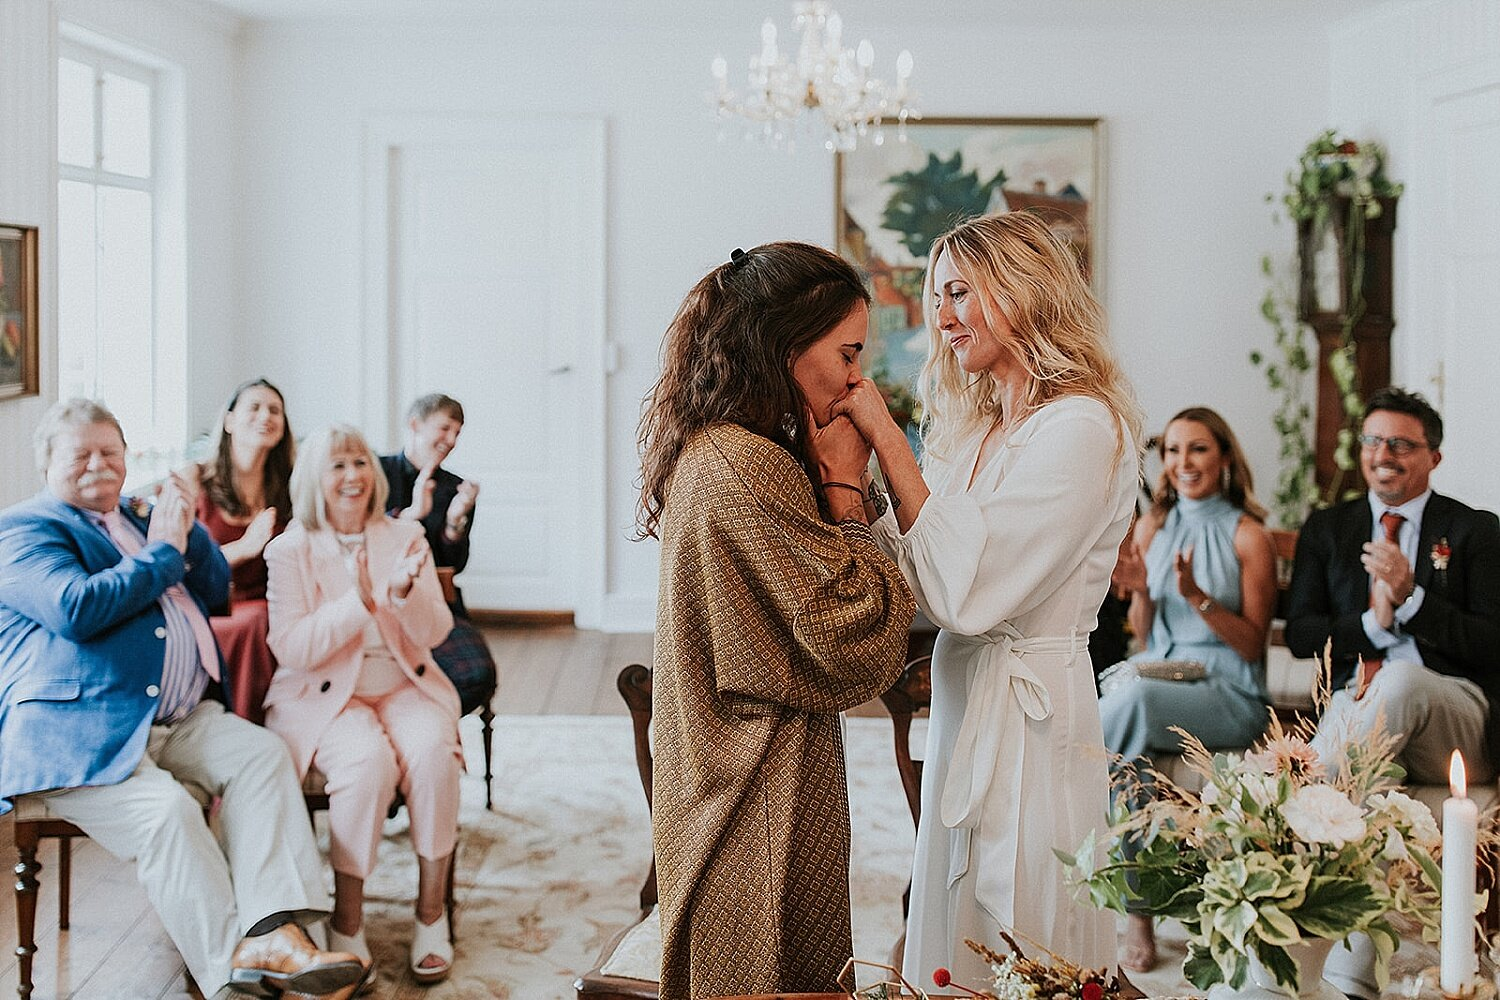 Two brides kissing at wedding ceremony